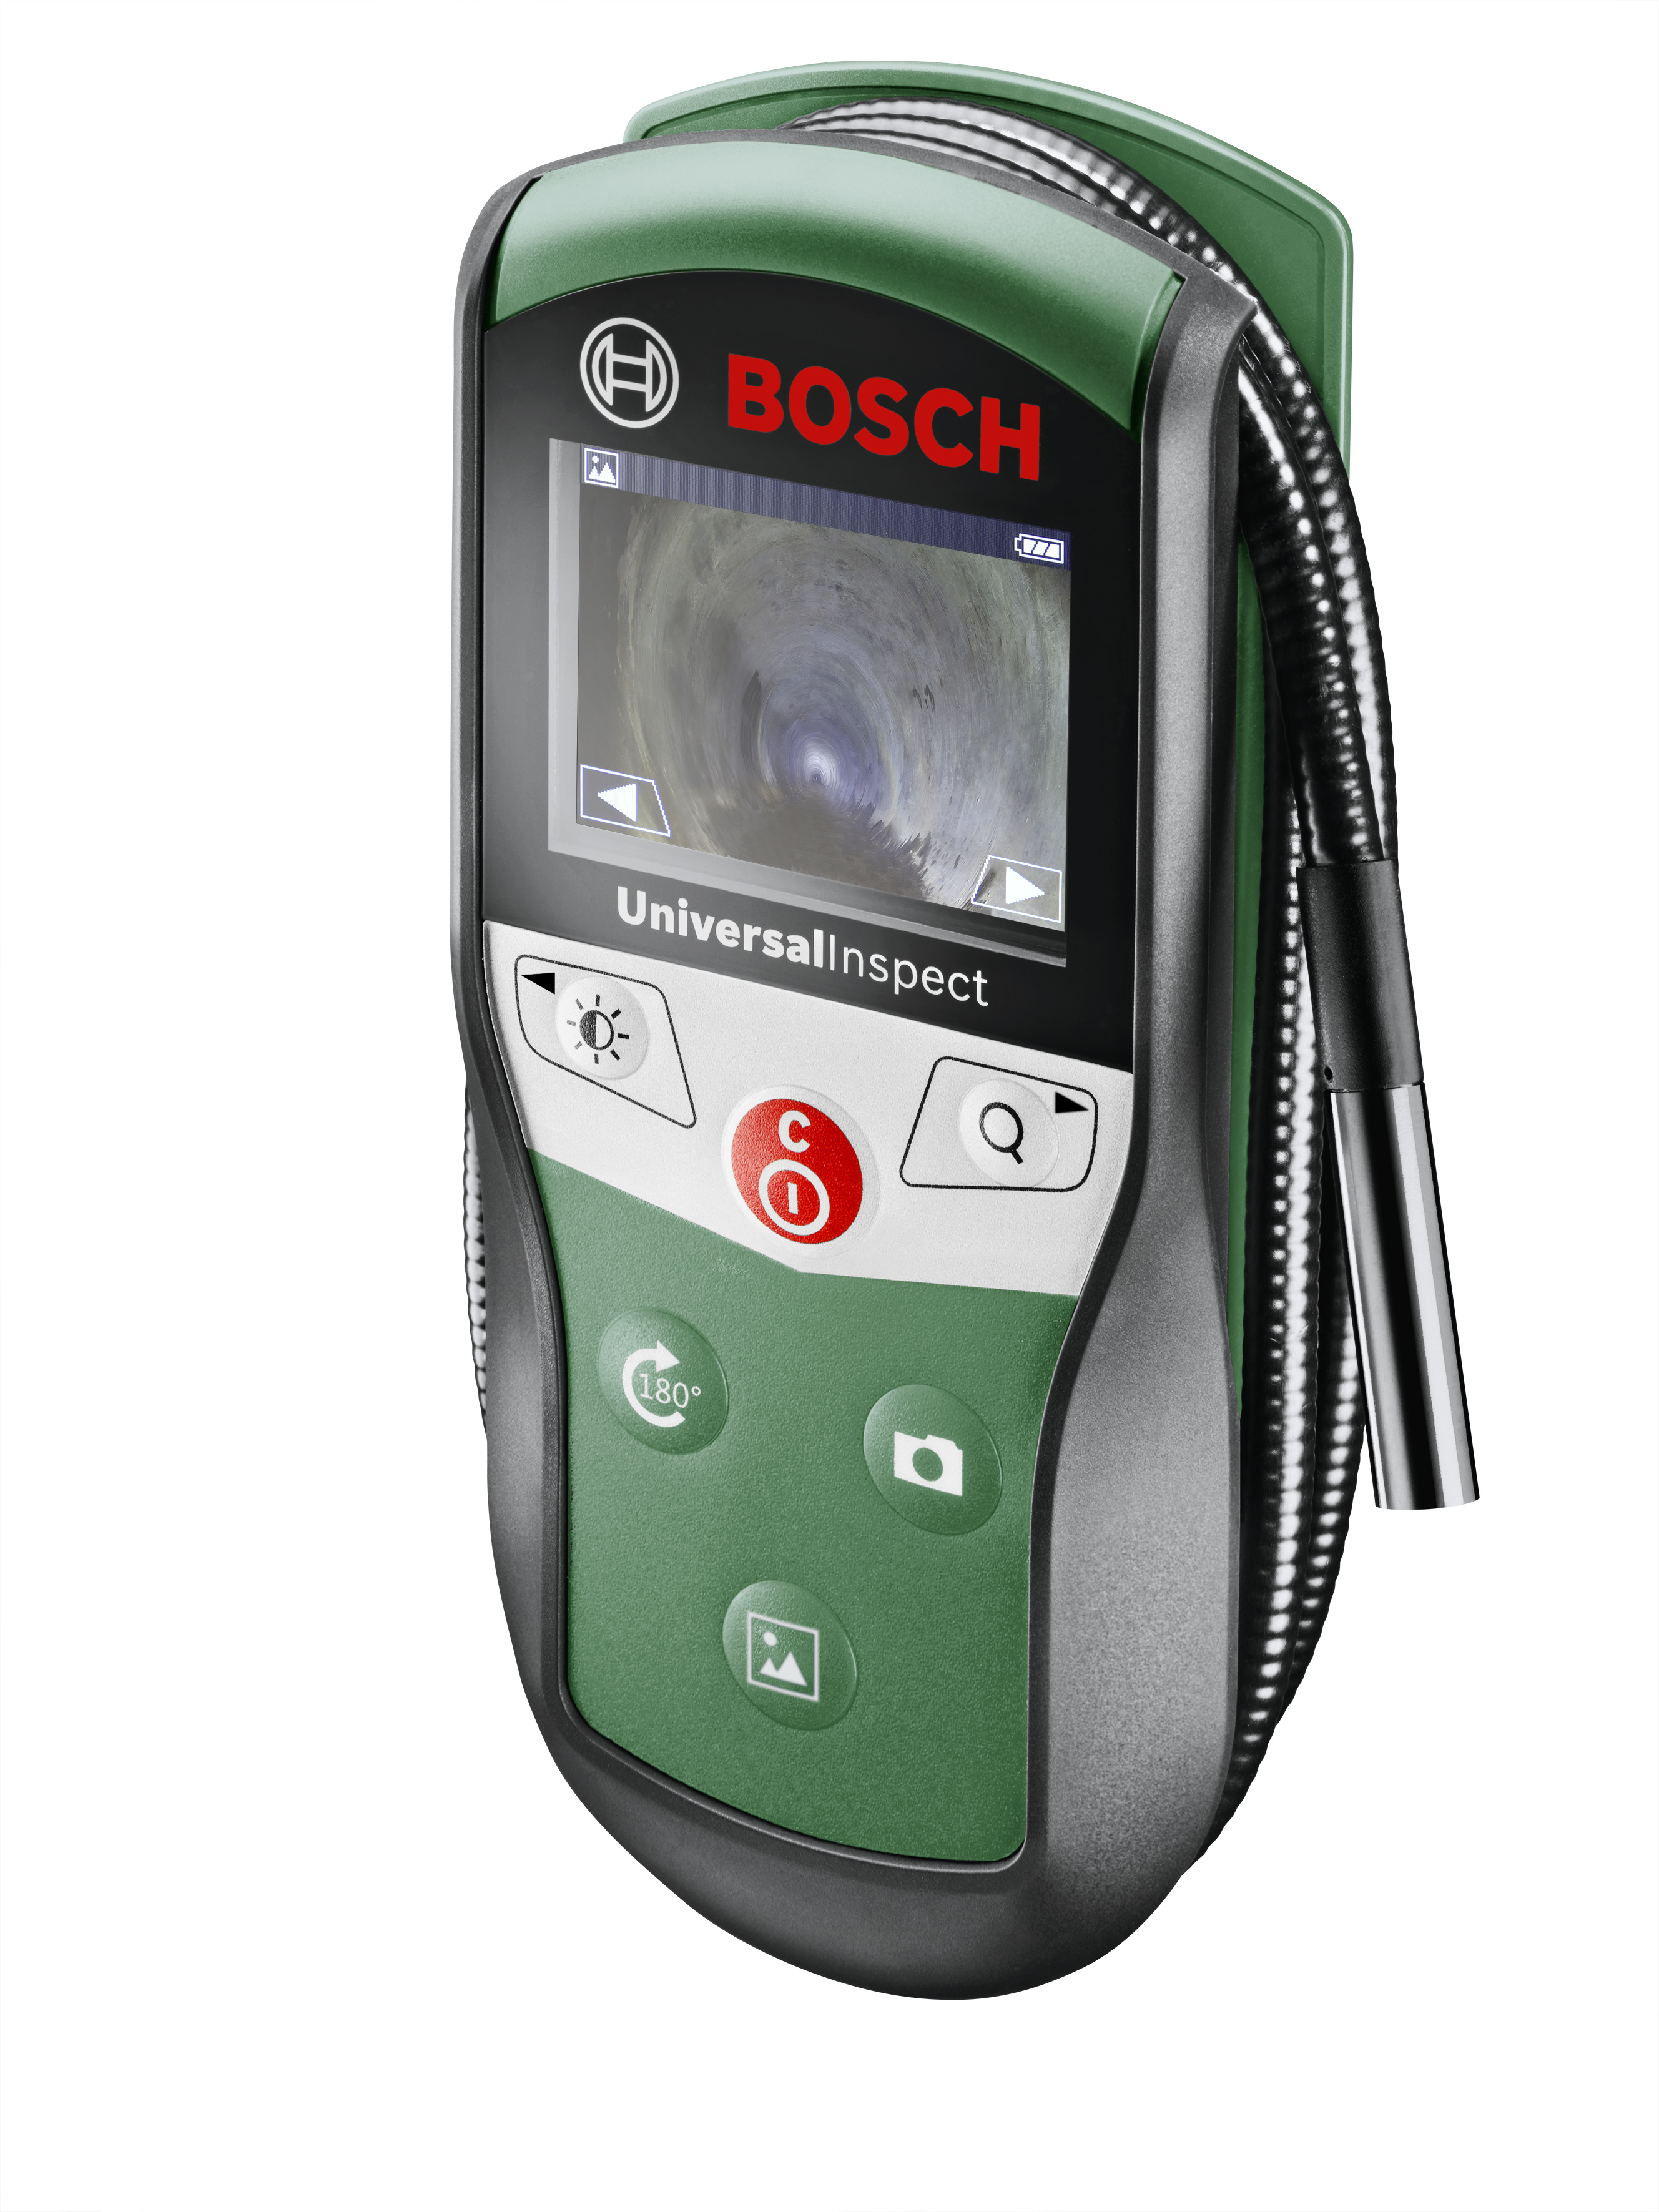 New product in the detection range for DIY enthusiasts: UniversalInspect inspection camera from Bosch